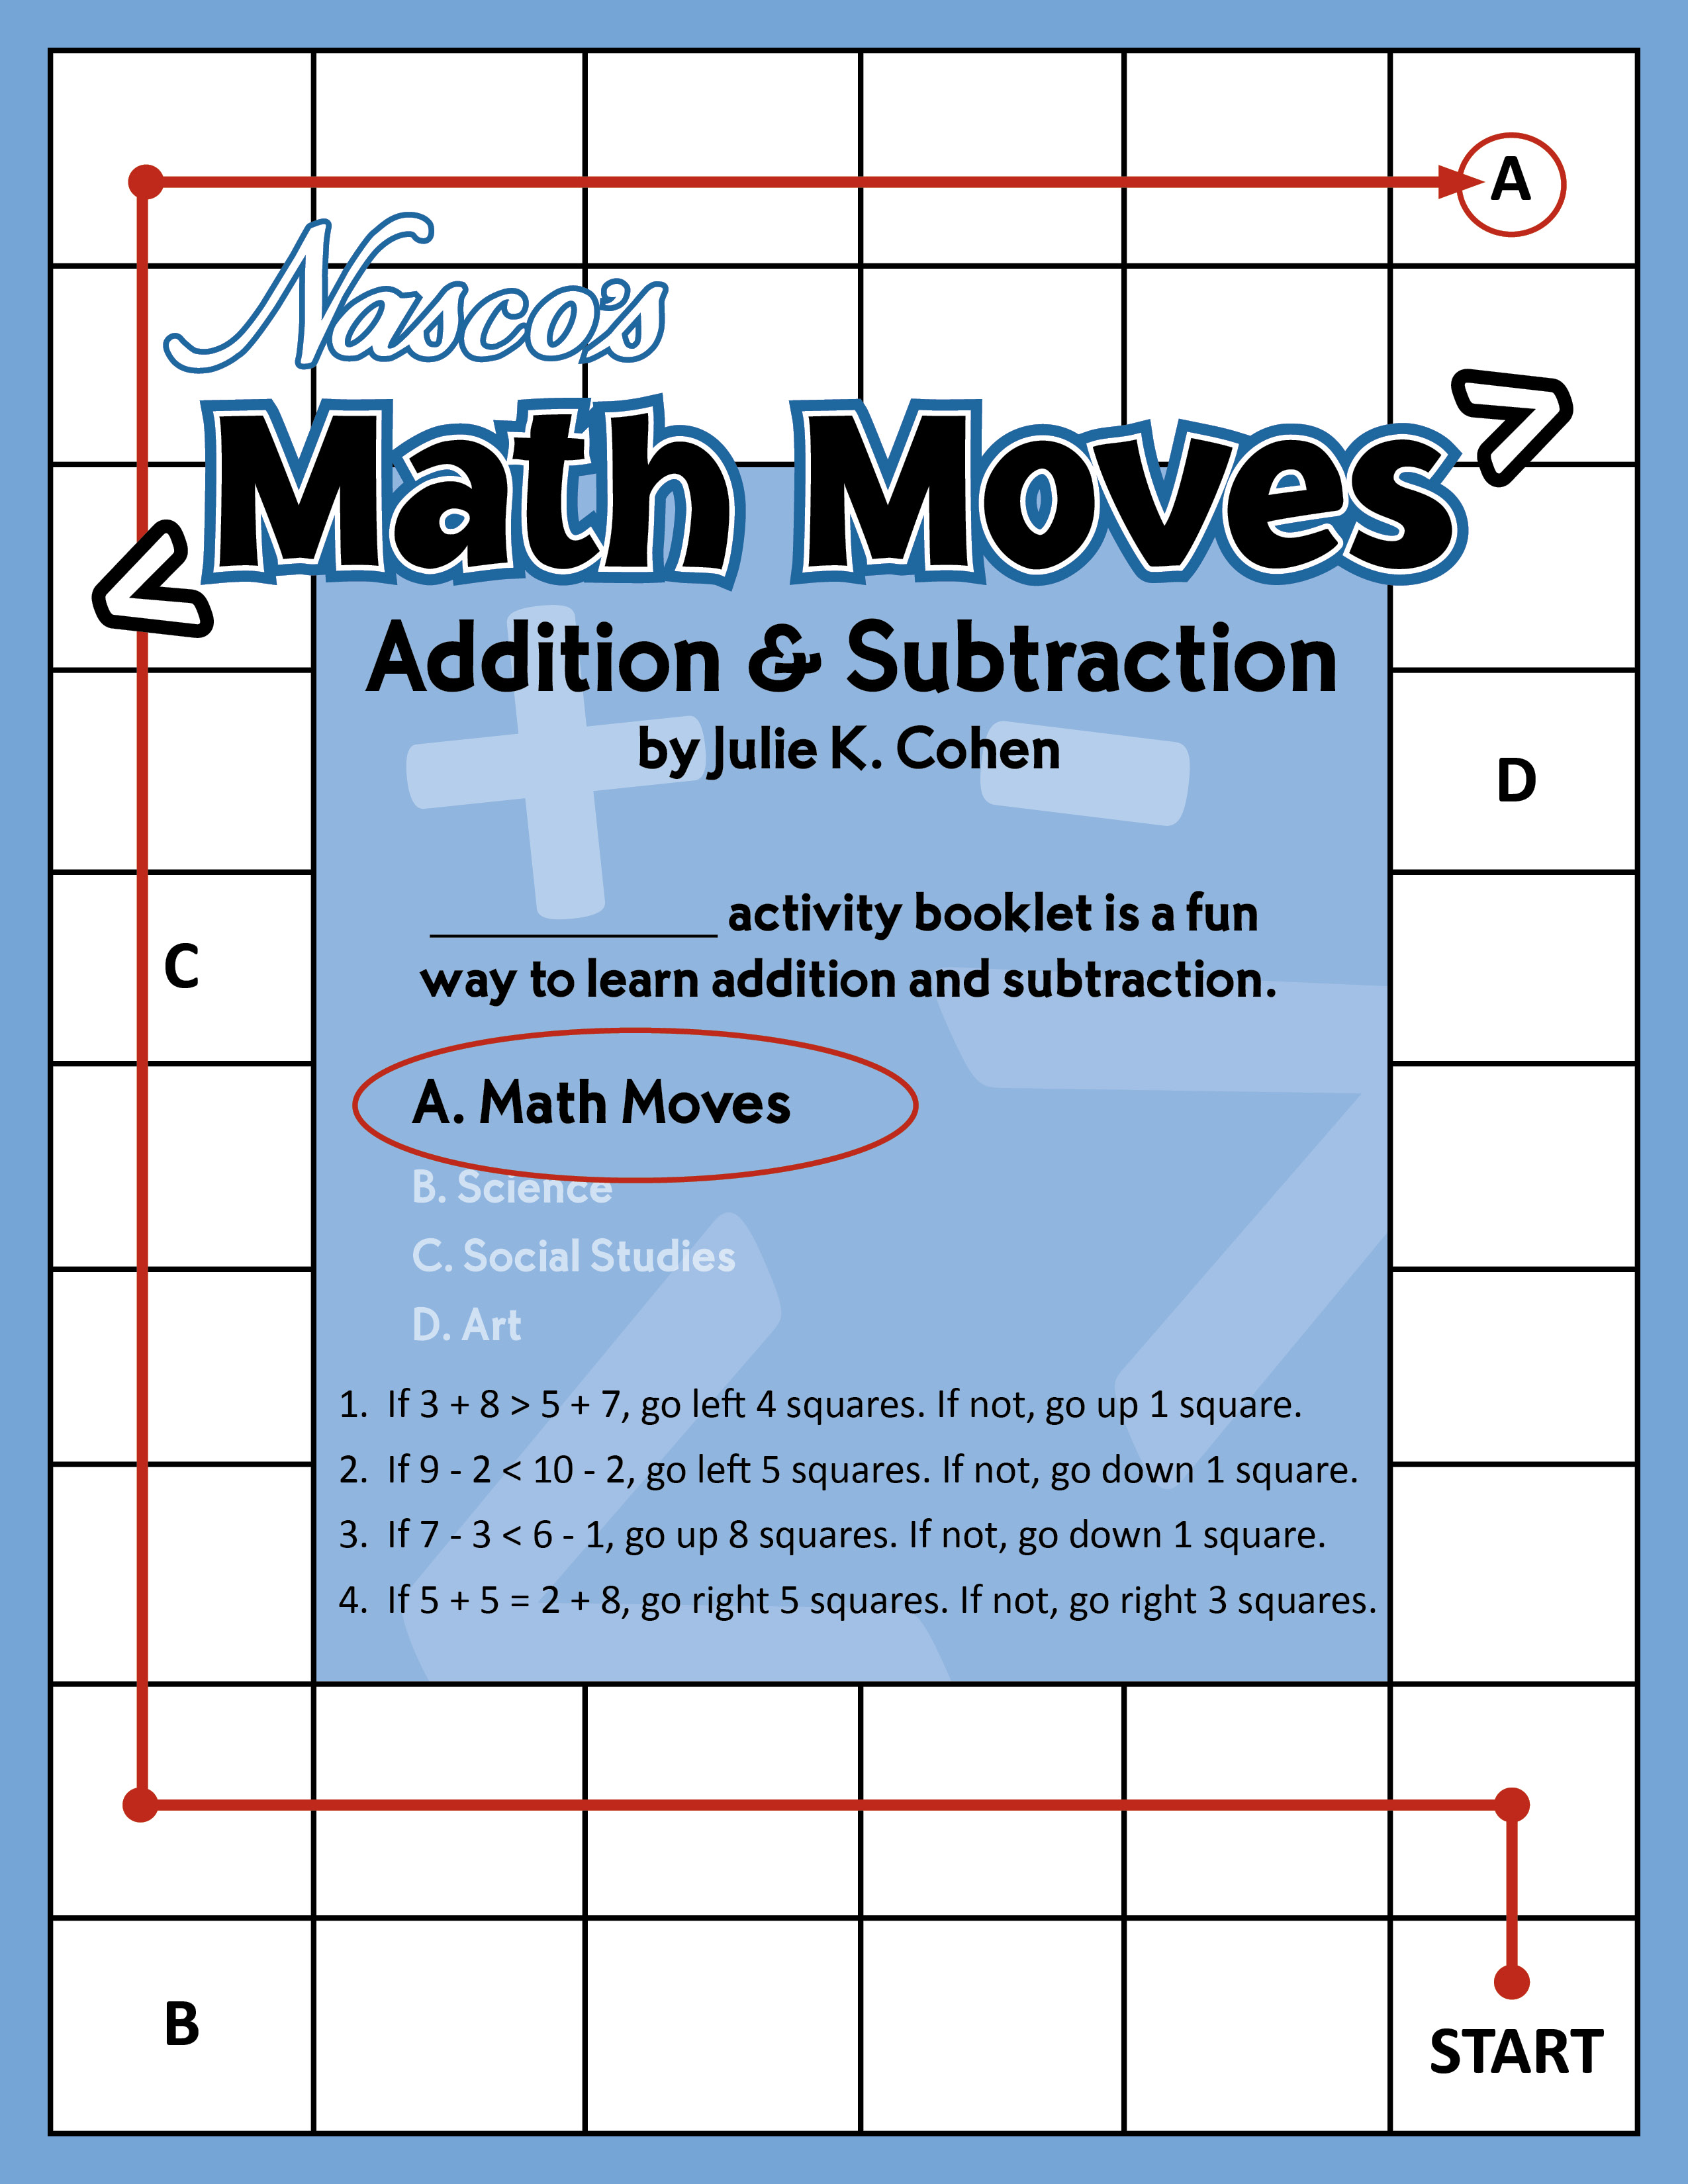 Julie K. Cohen - Math Moves Addition & Subtraction Math Puzzle Book